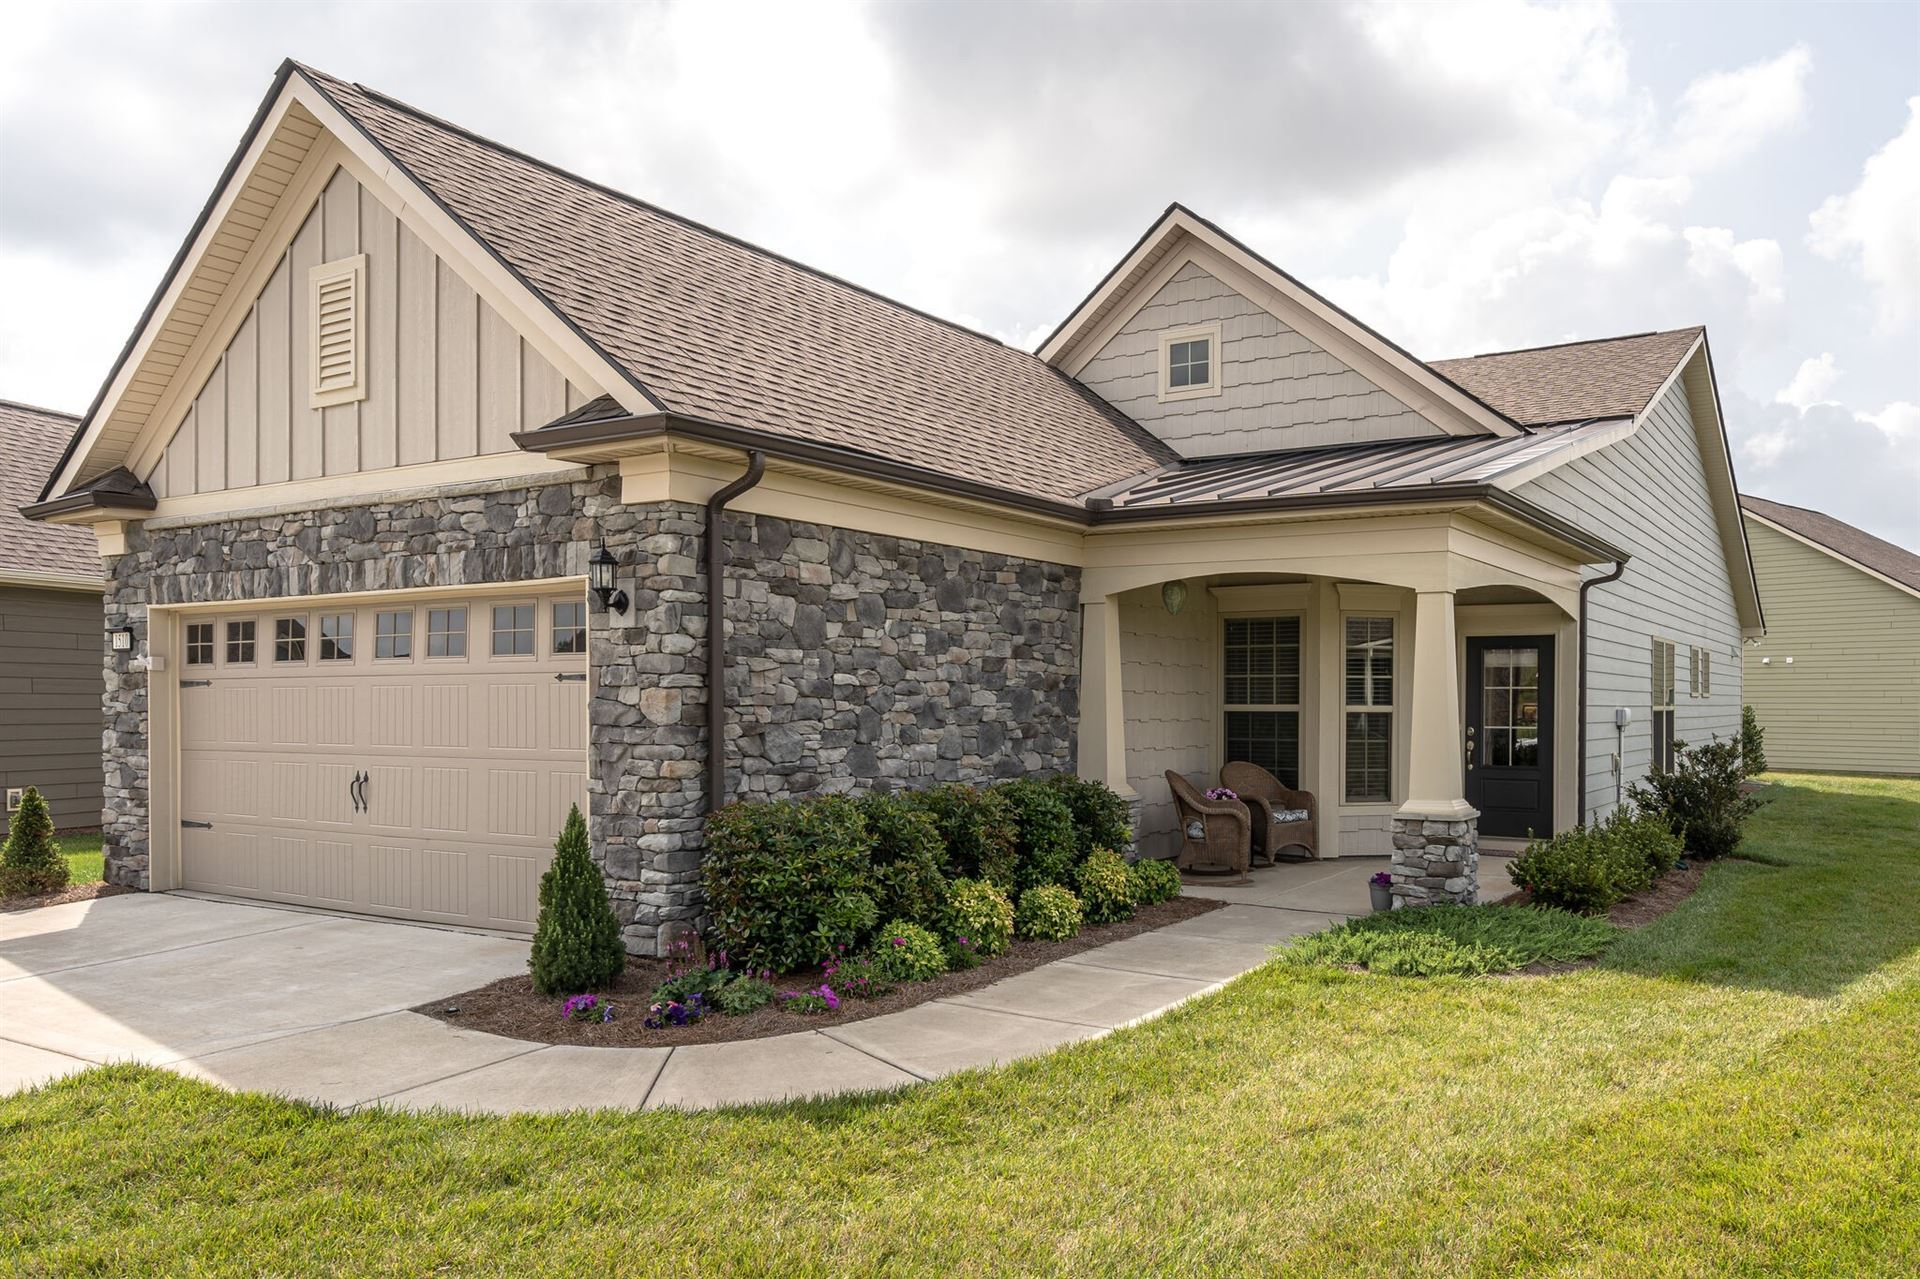 Photo of 1510 Bledsoe Knoll, Spring Hill, TN 37174 (MLS # 2275715)